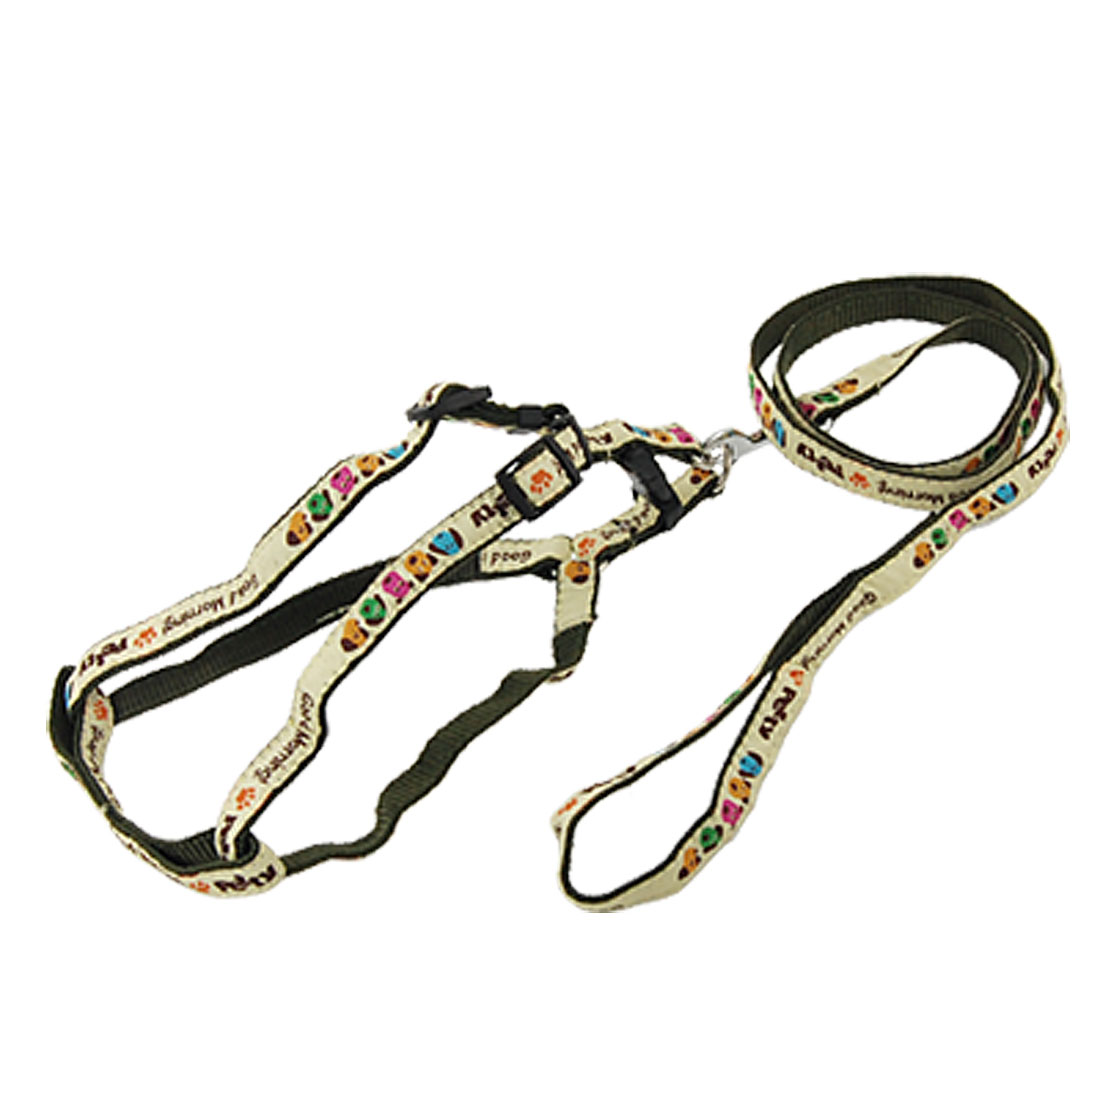 Letters Pattern Pet Dog Puppy Lead Harness Pulling Leash Rope Army Green